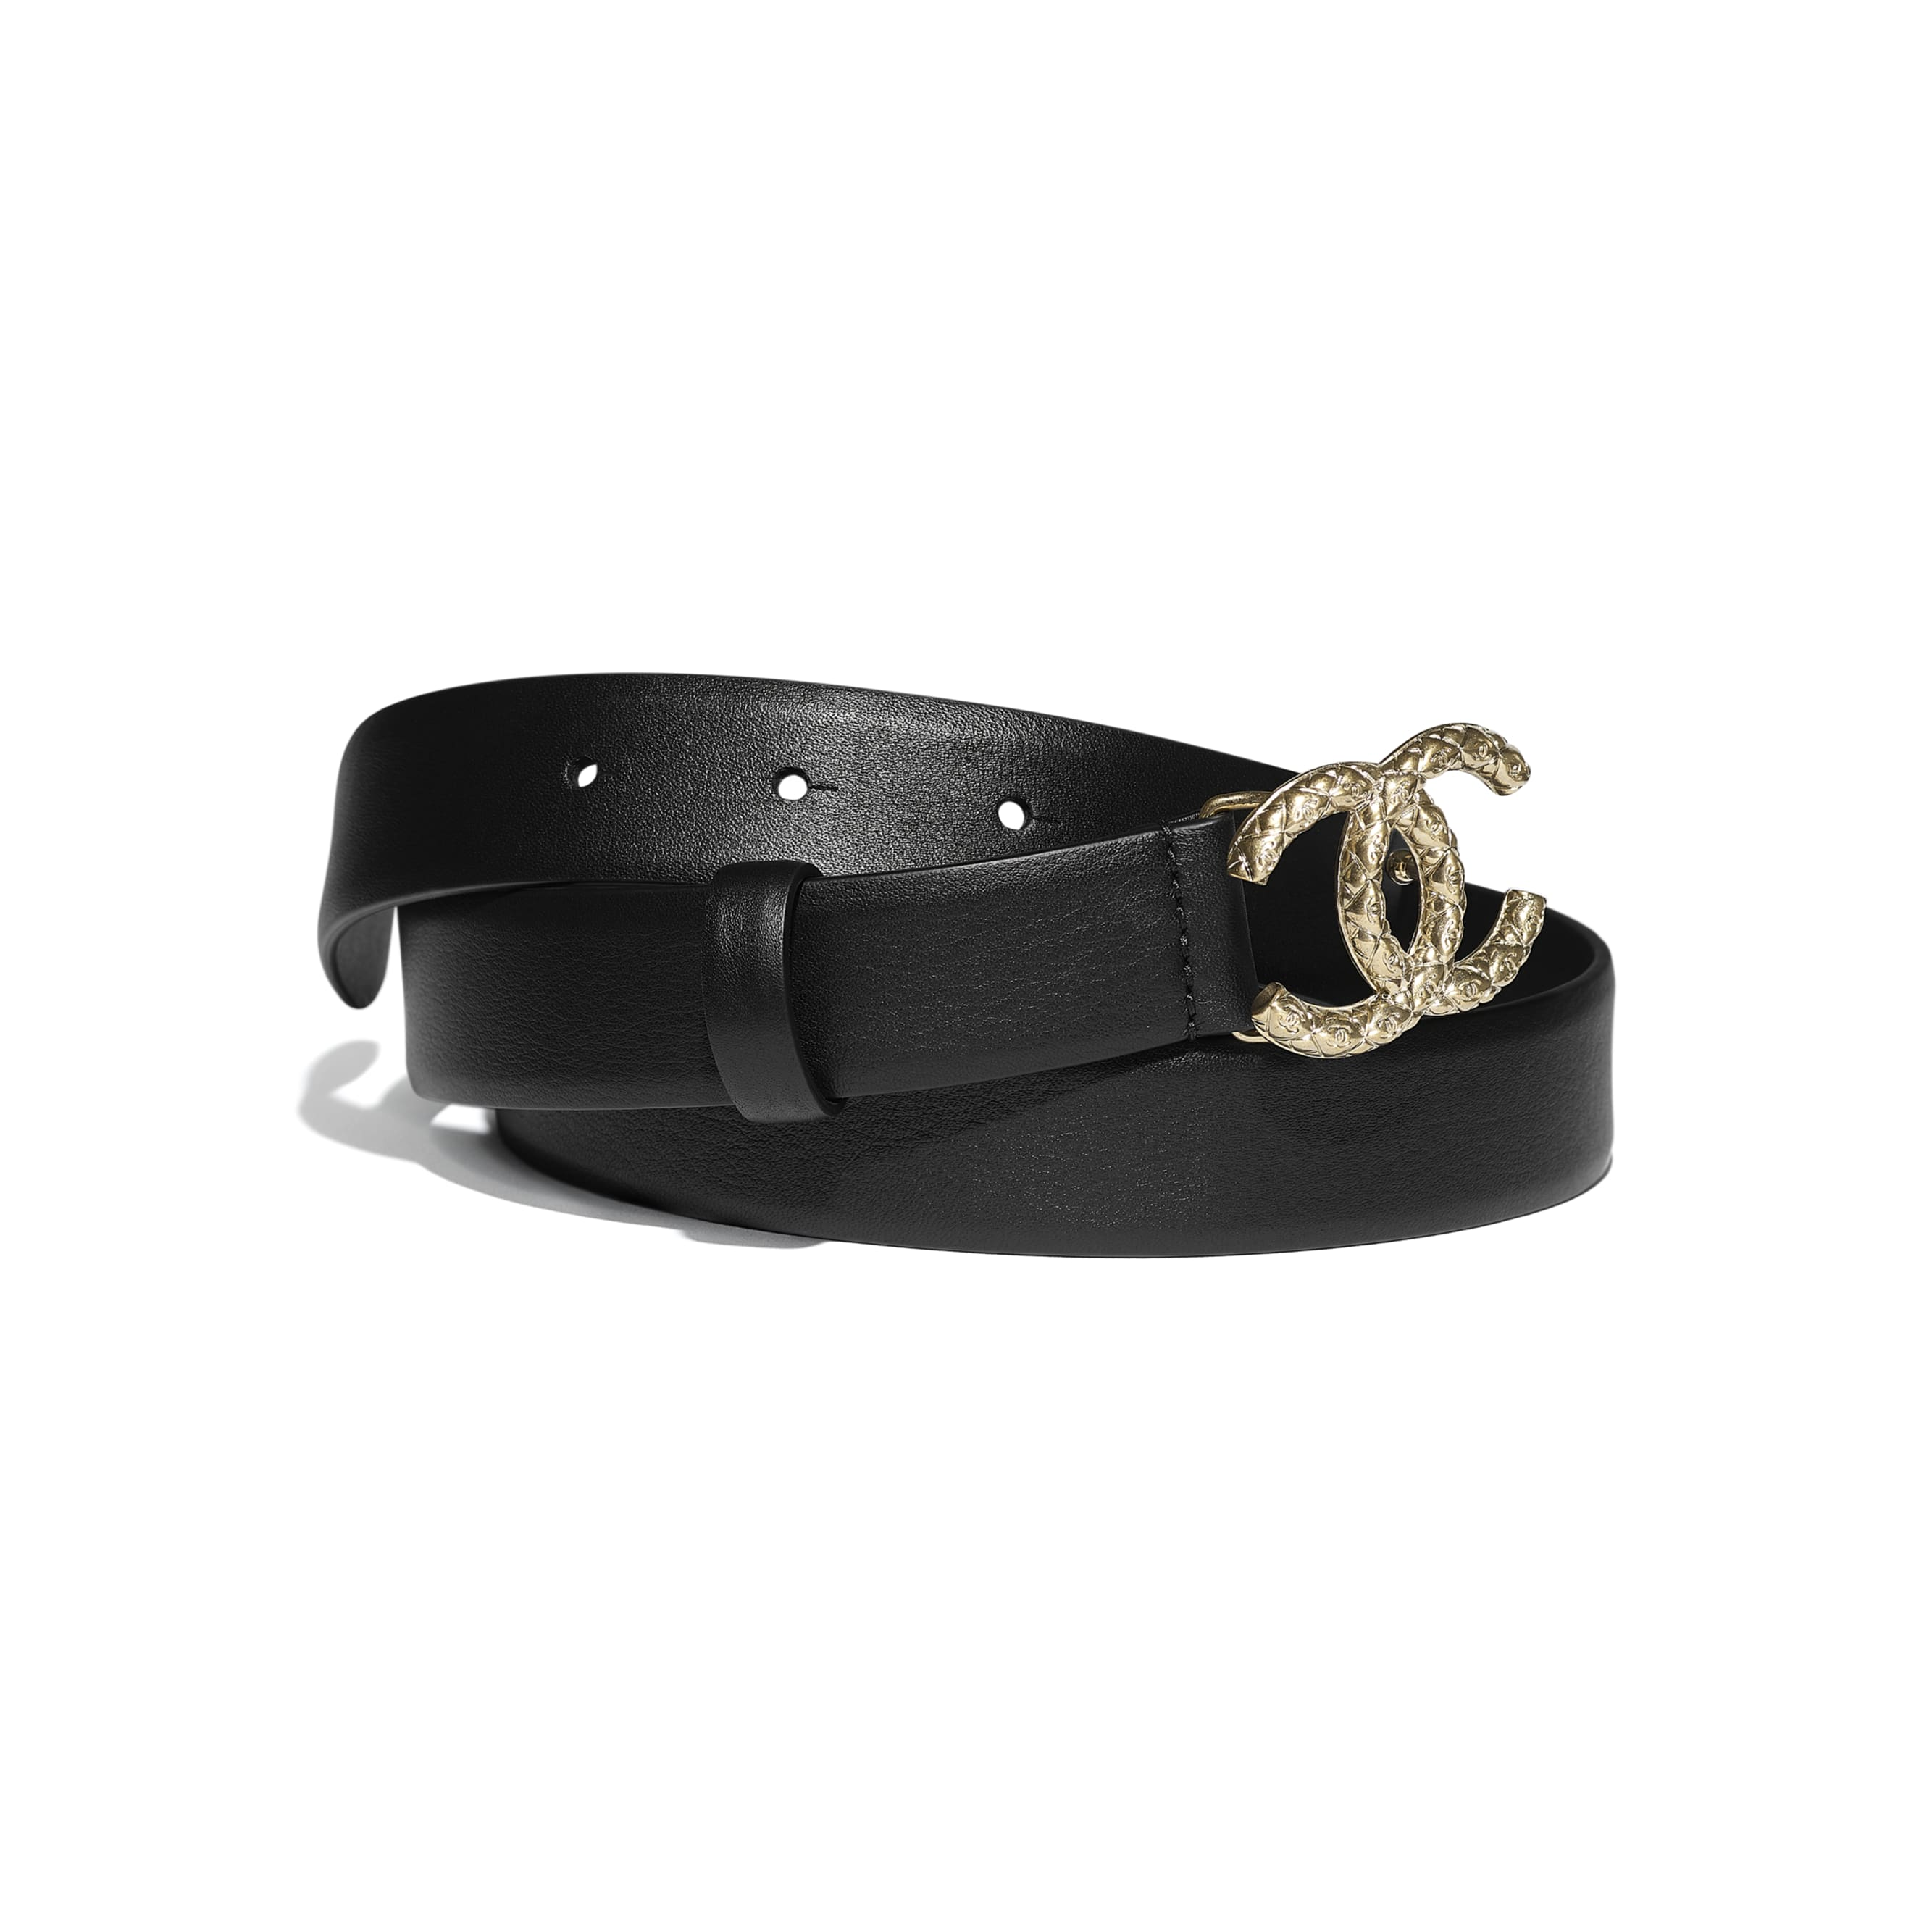 How Much Is Chanel? Chanel Price Guide how much is a chanel belt